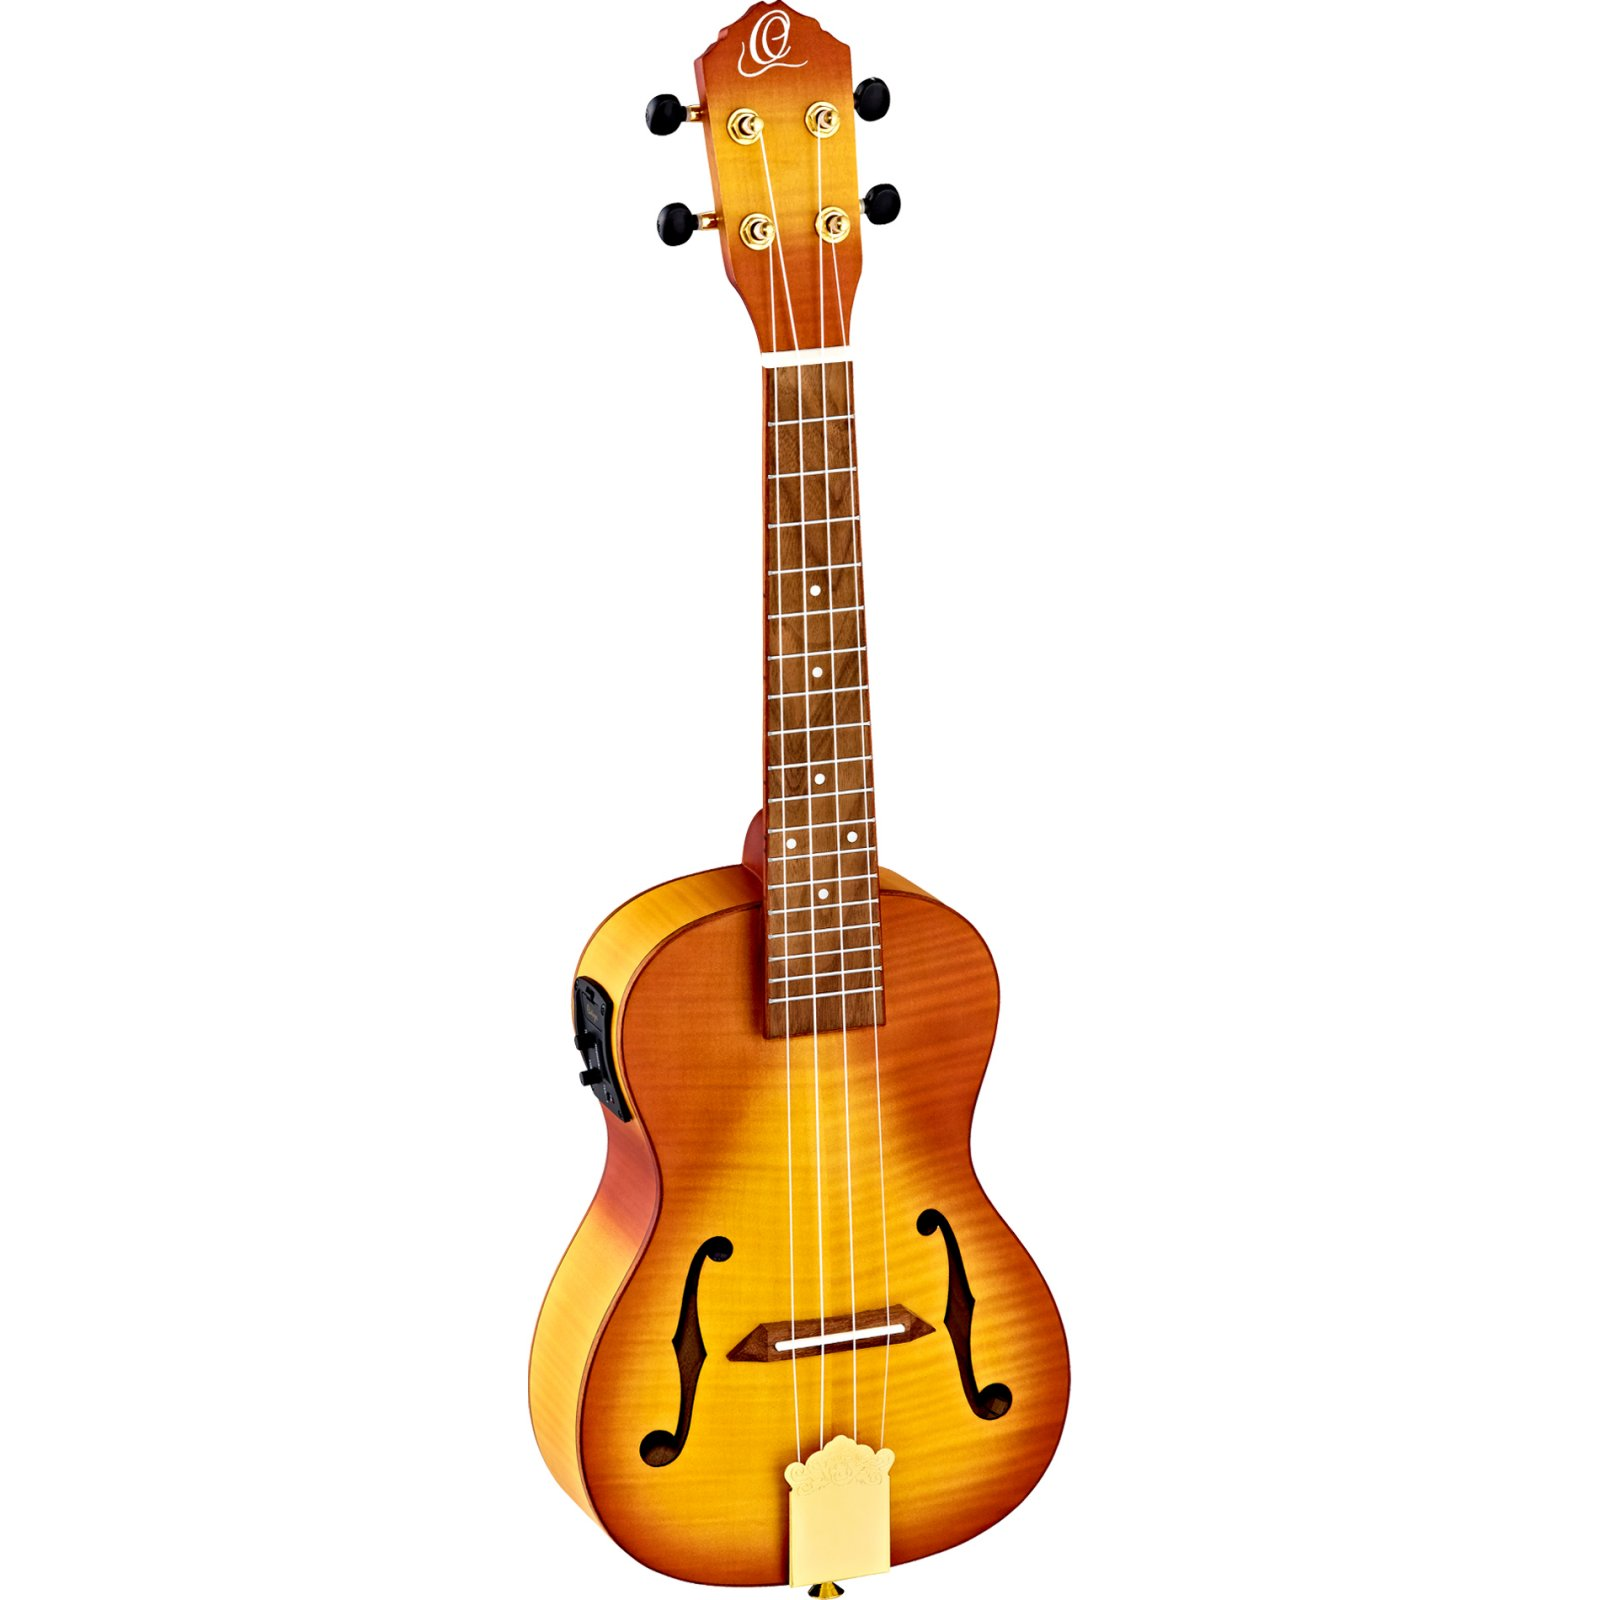 Ortega RUSL-HSB Saloon Series Arched Top Electric Concert Ukulele w/ Deluxe Gig Bag